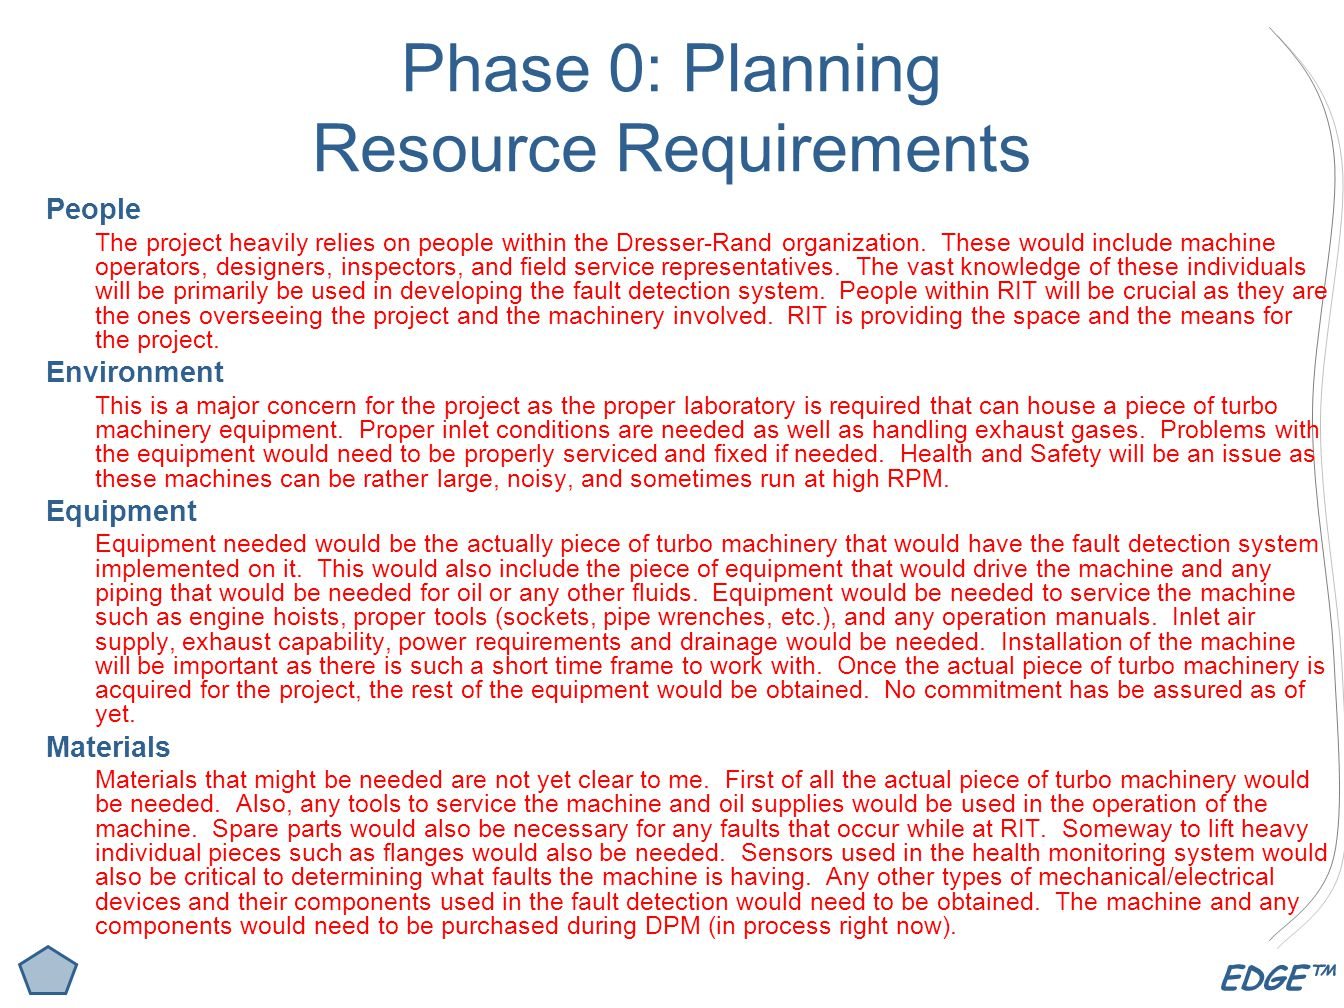 EDGE™ Phase 1: Concept Development Identify Customer Needs - Interviews Primary Customer(s) Dresser-Rand I plan on interviewing the primary contact, Scott Delmotte.